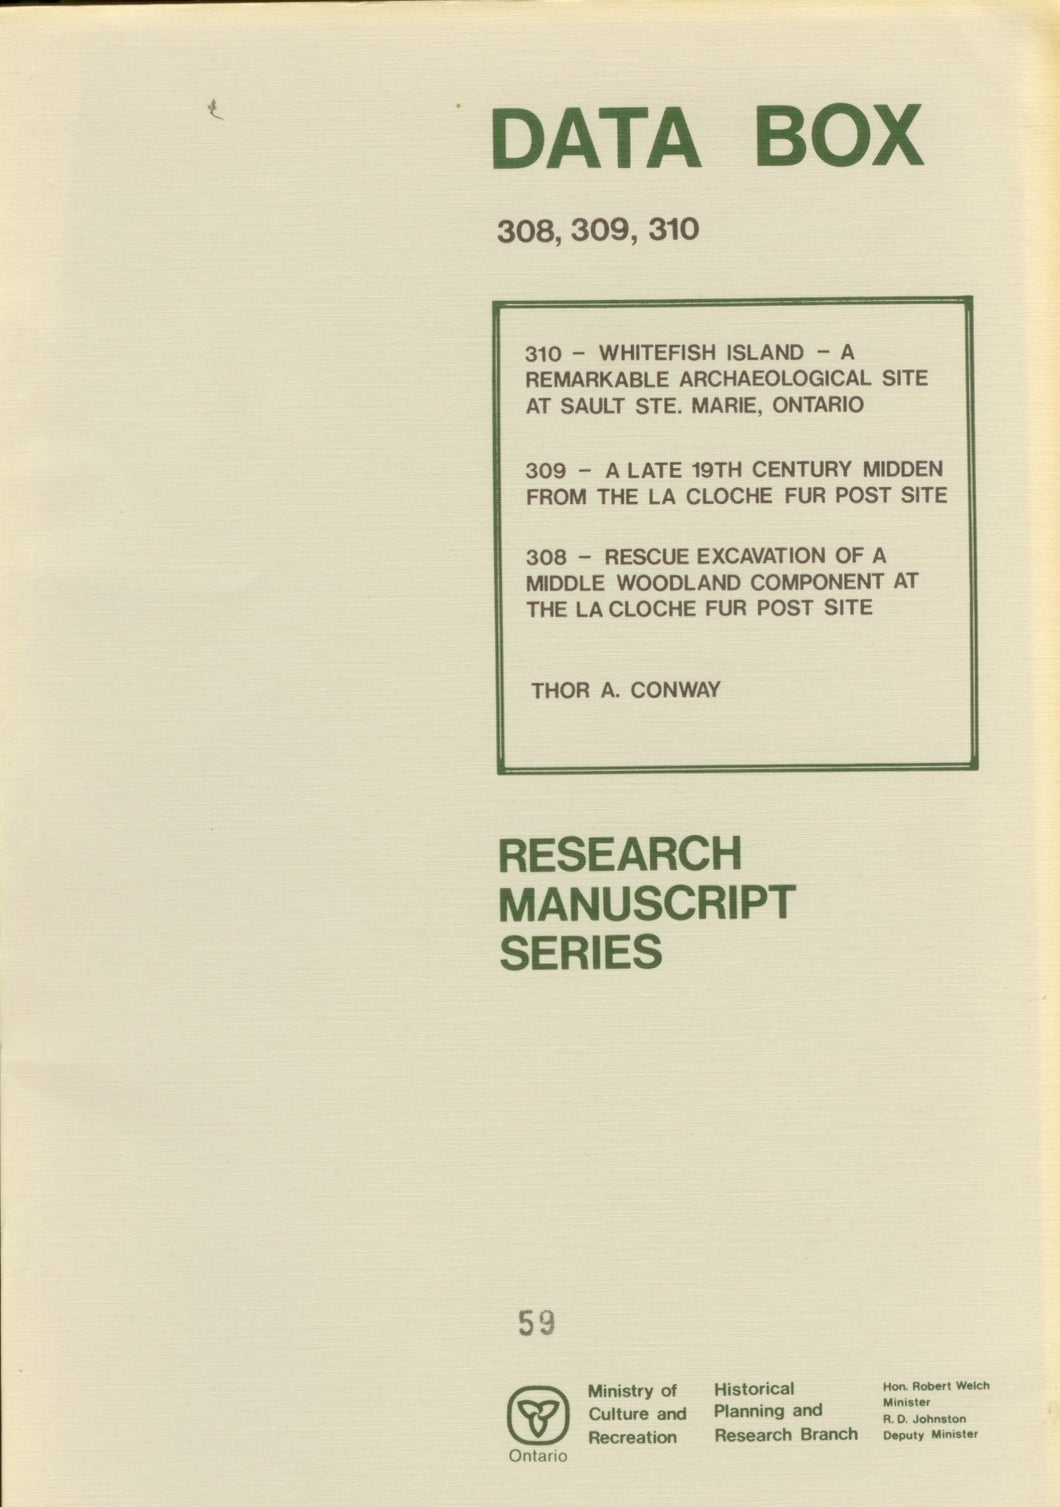 Data Box Research Manuscript Series May 1977